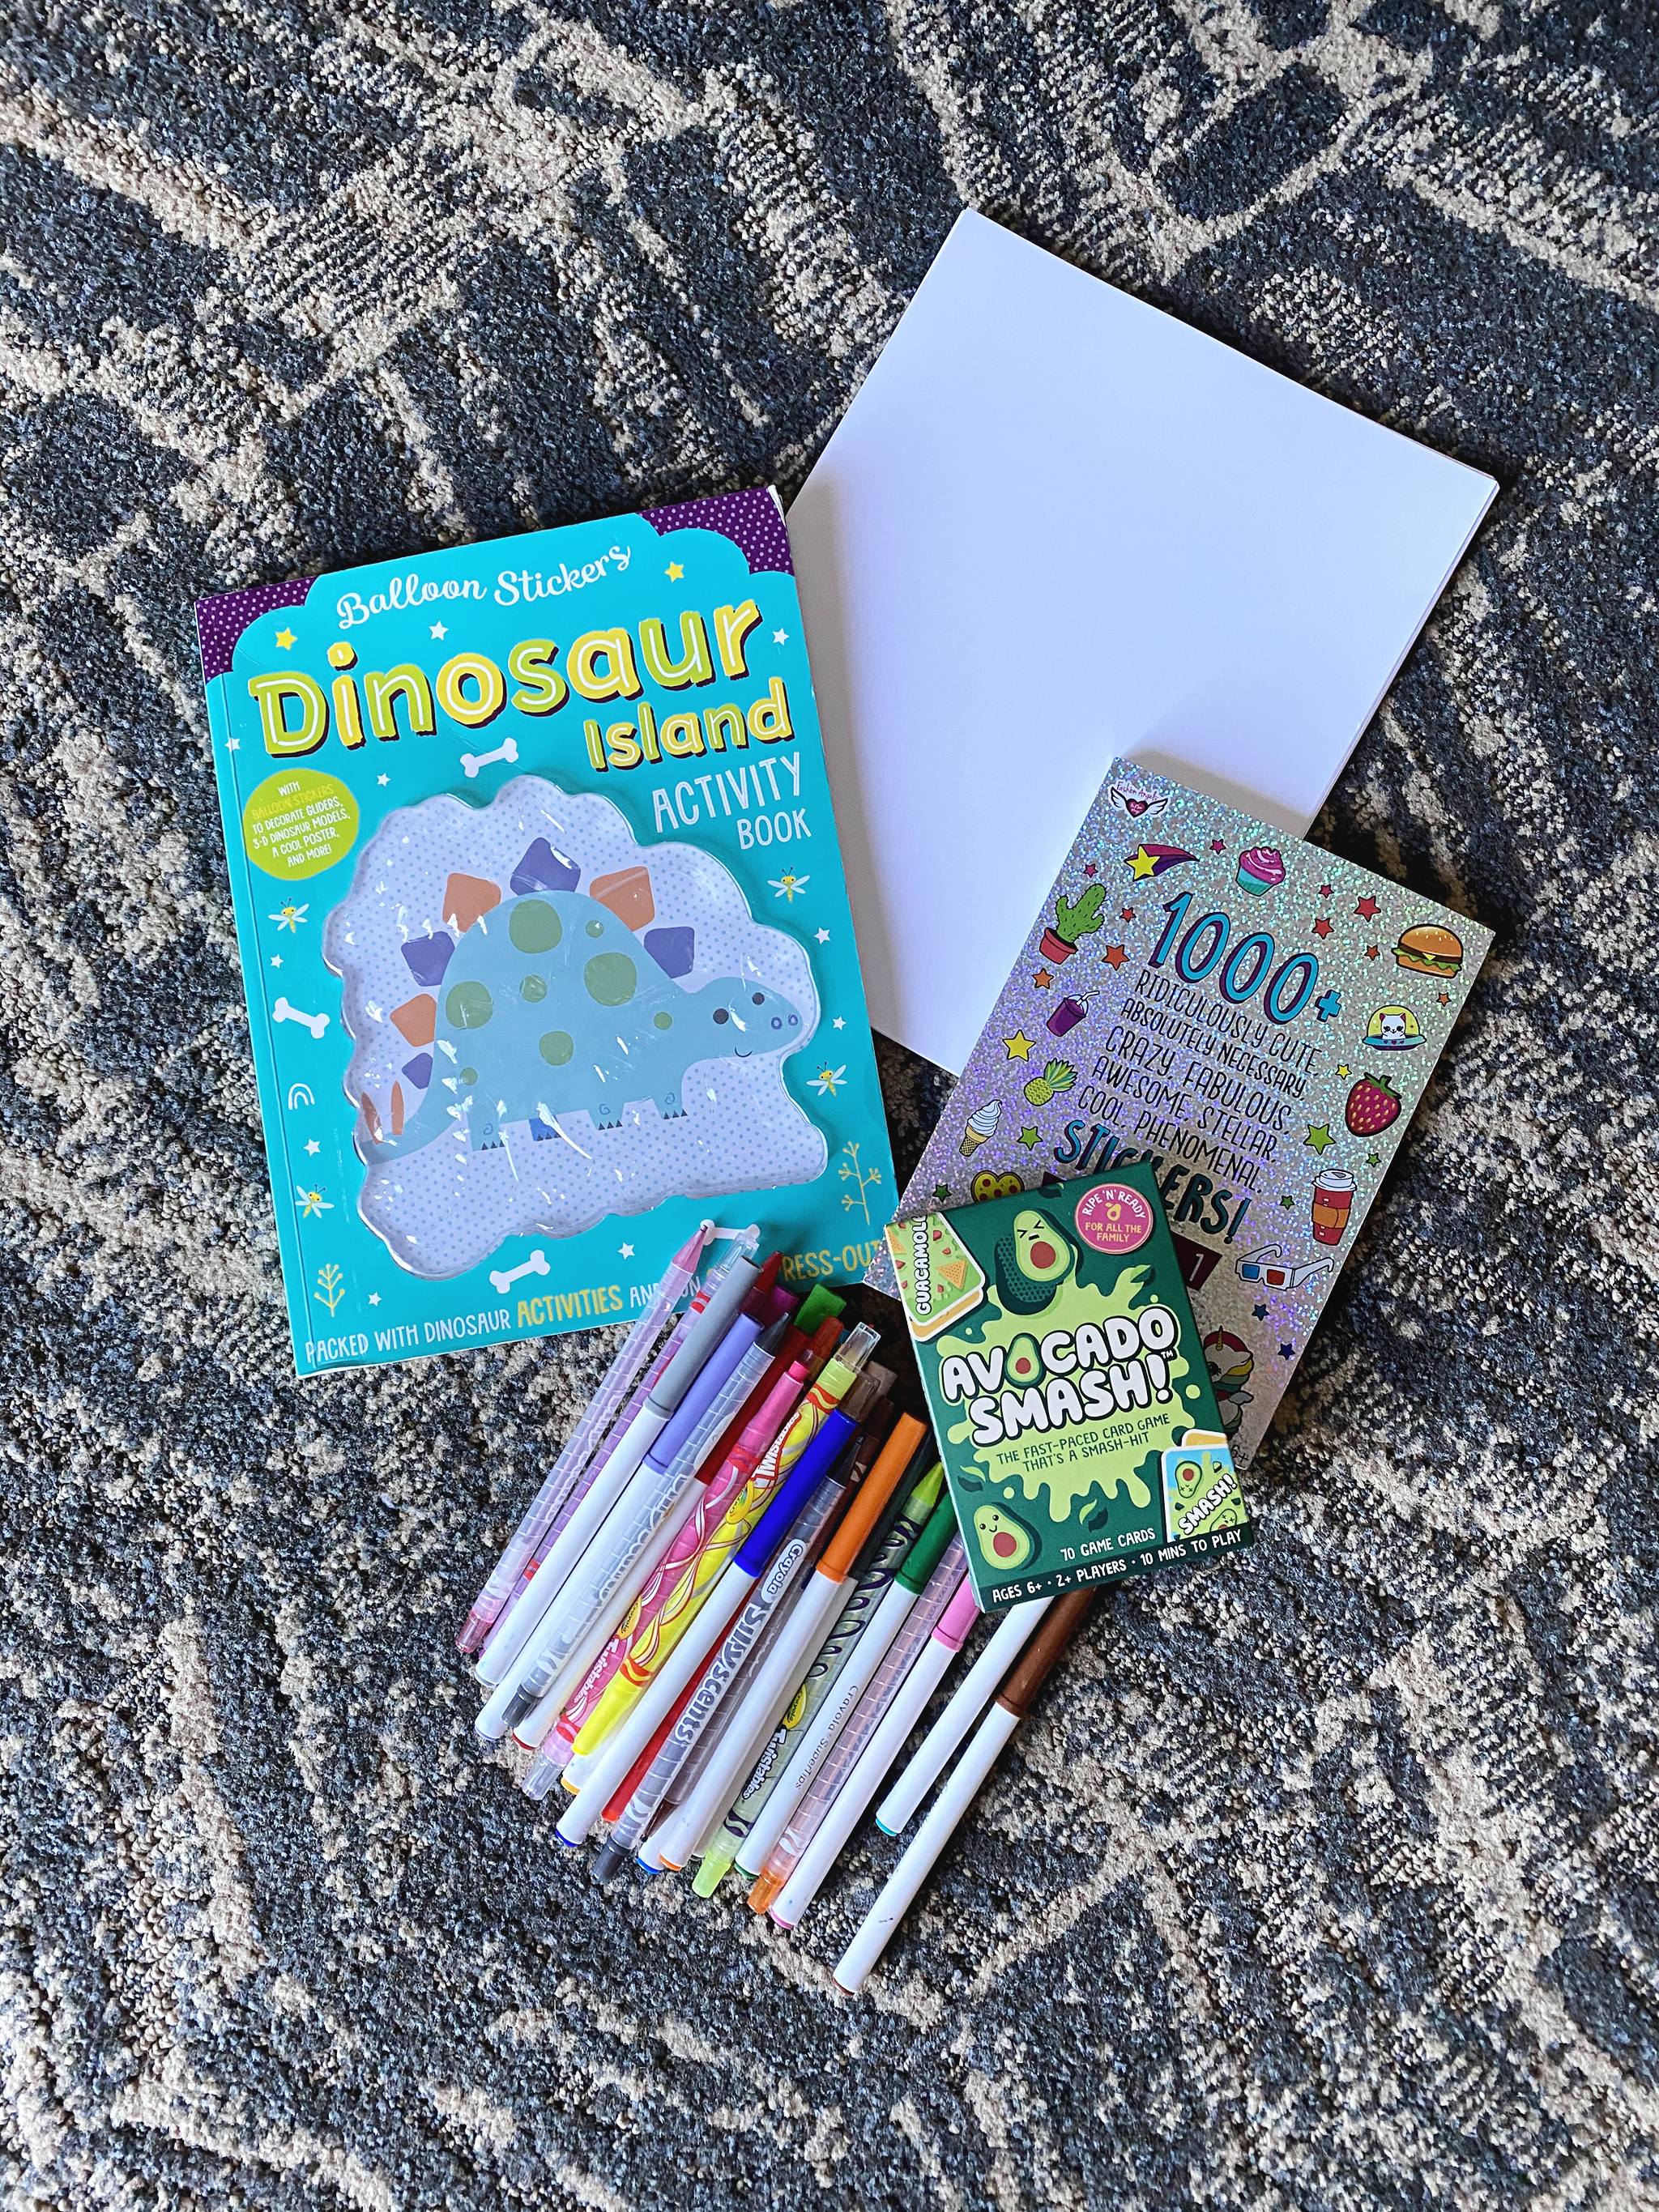 Activity books, card games, paper, and stickers are the best!